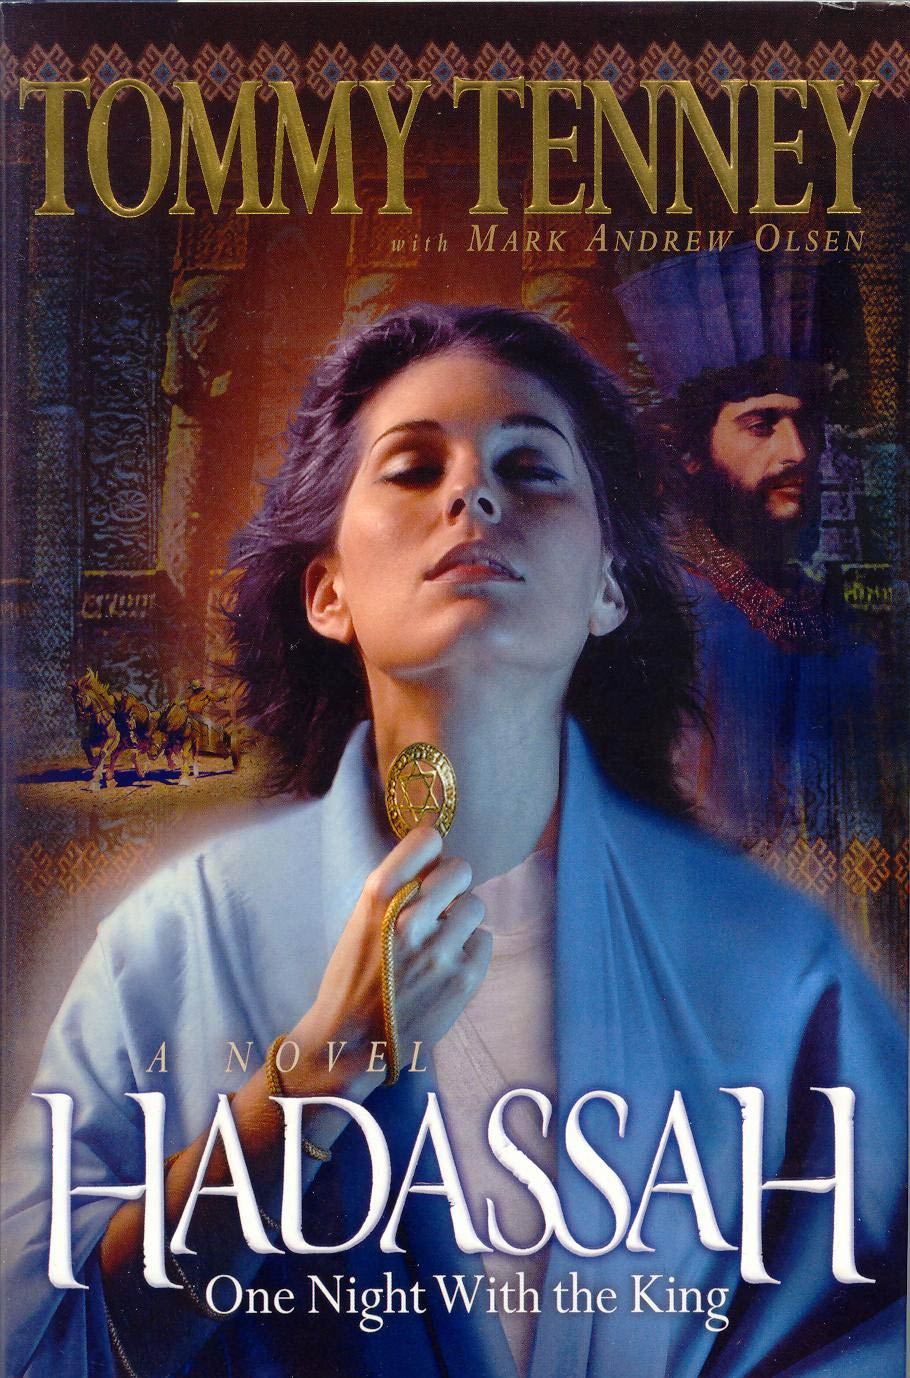 Hadassah, One Night with the King.